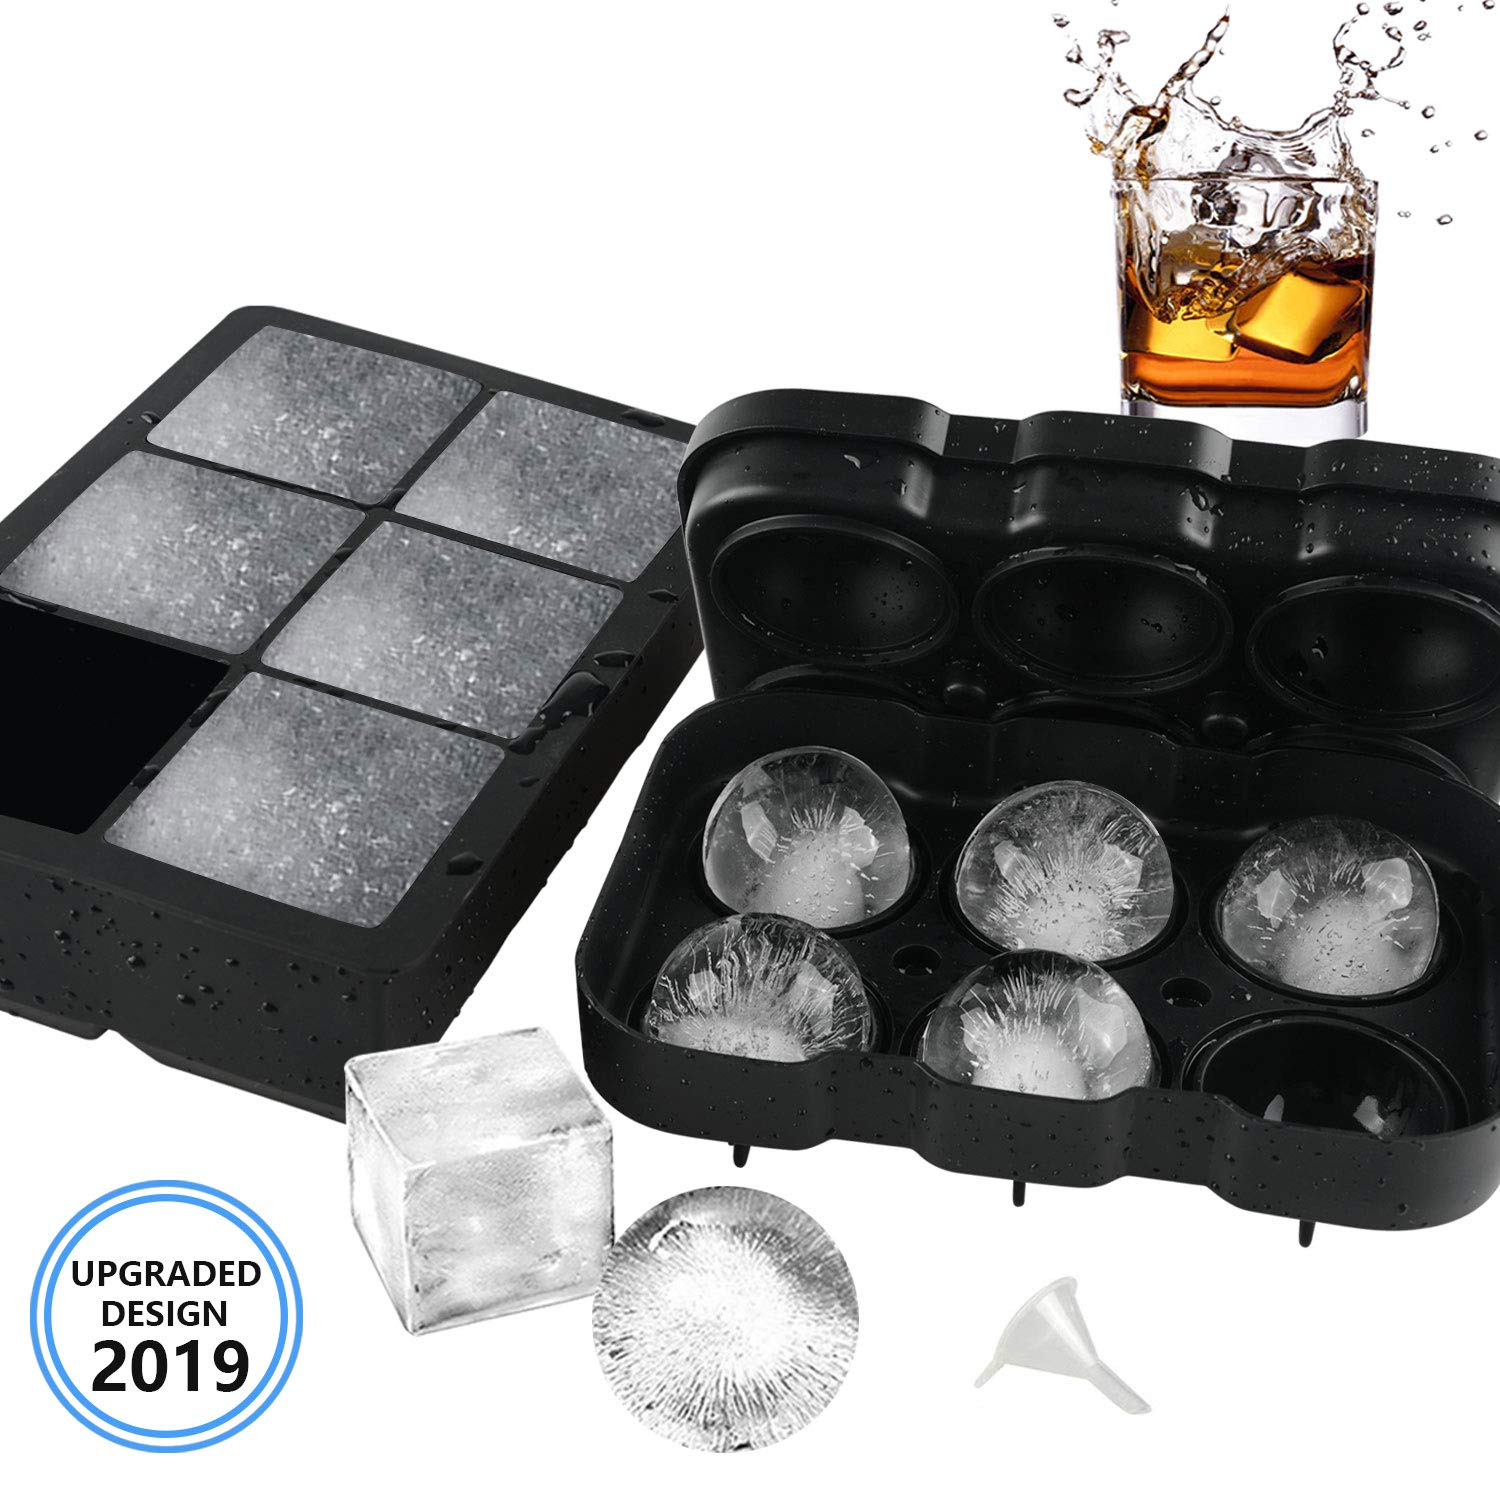 VOLOOP Ice Cube Trays Silicone | 2 Inch Large Sphere Round Cocktail Ice Ball maker & Square Ice Cube Molds for Whiskey | Upgraded Design Preventing Leakage | Reusable BPA Free Set of 2 & free funnel